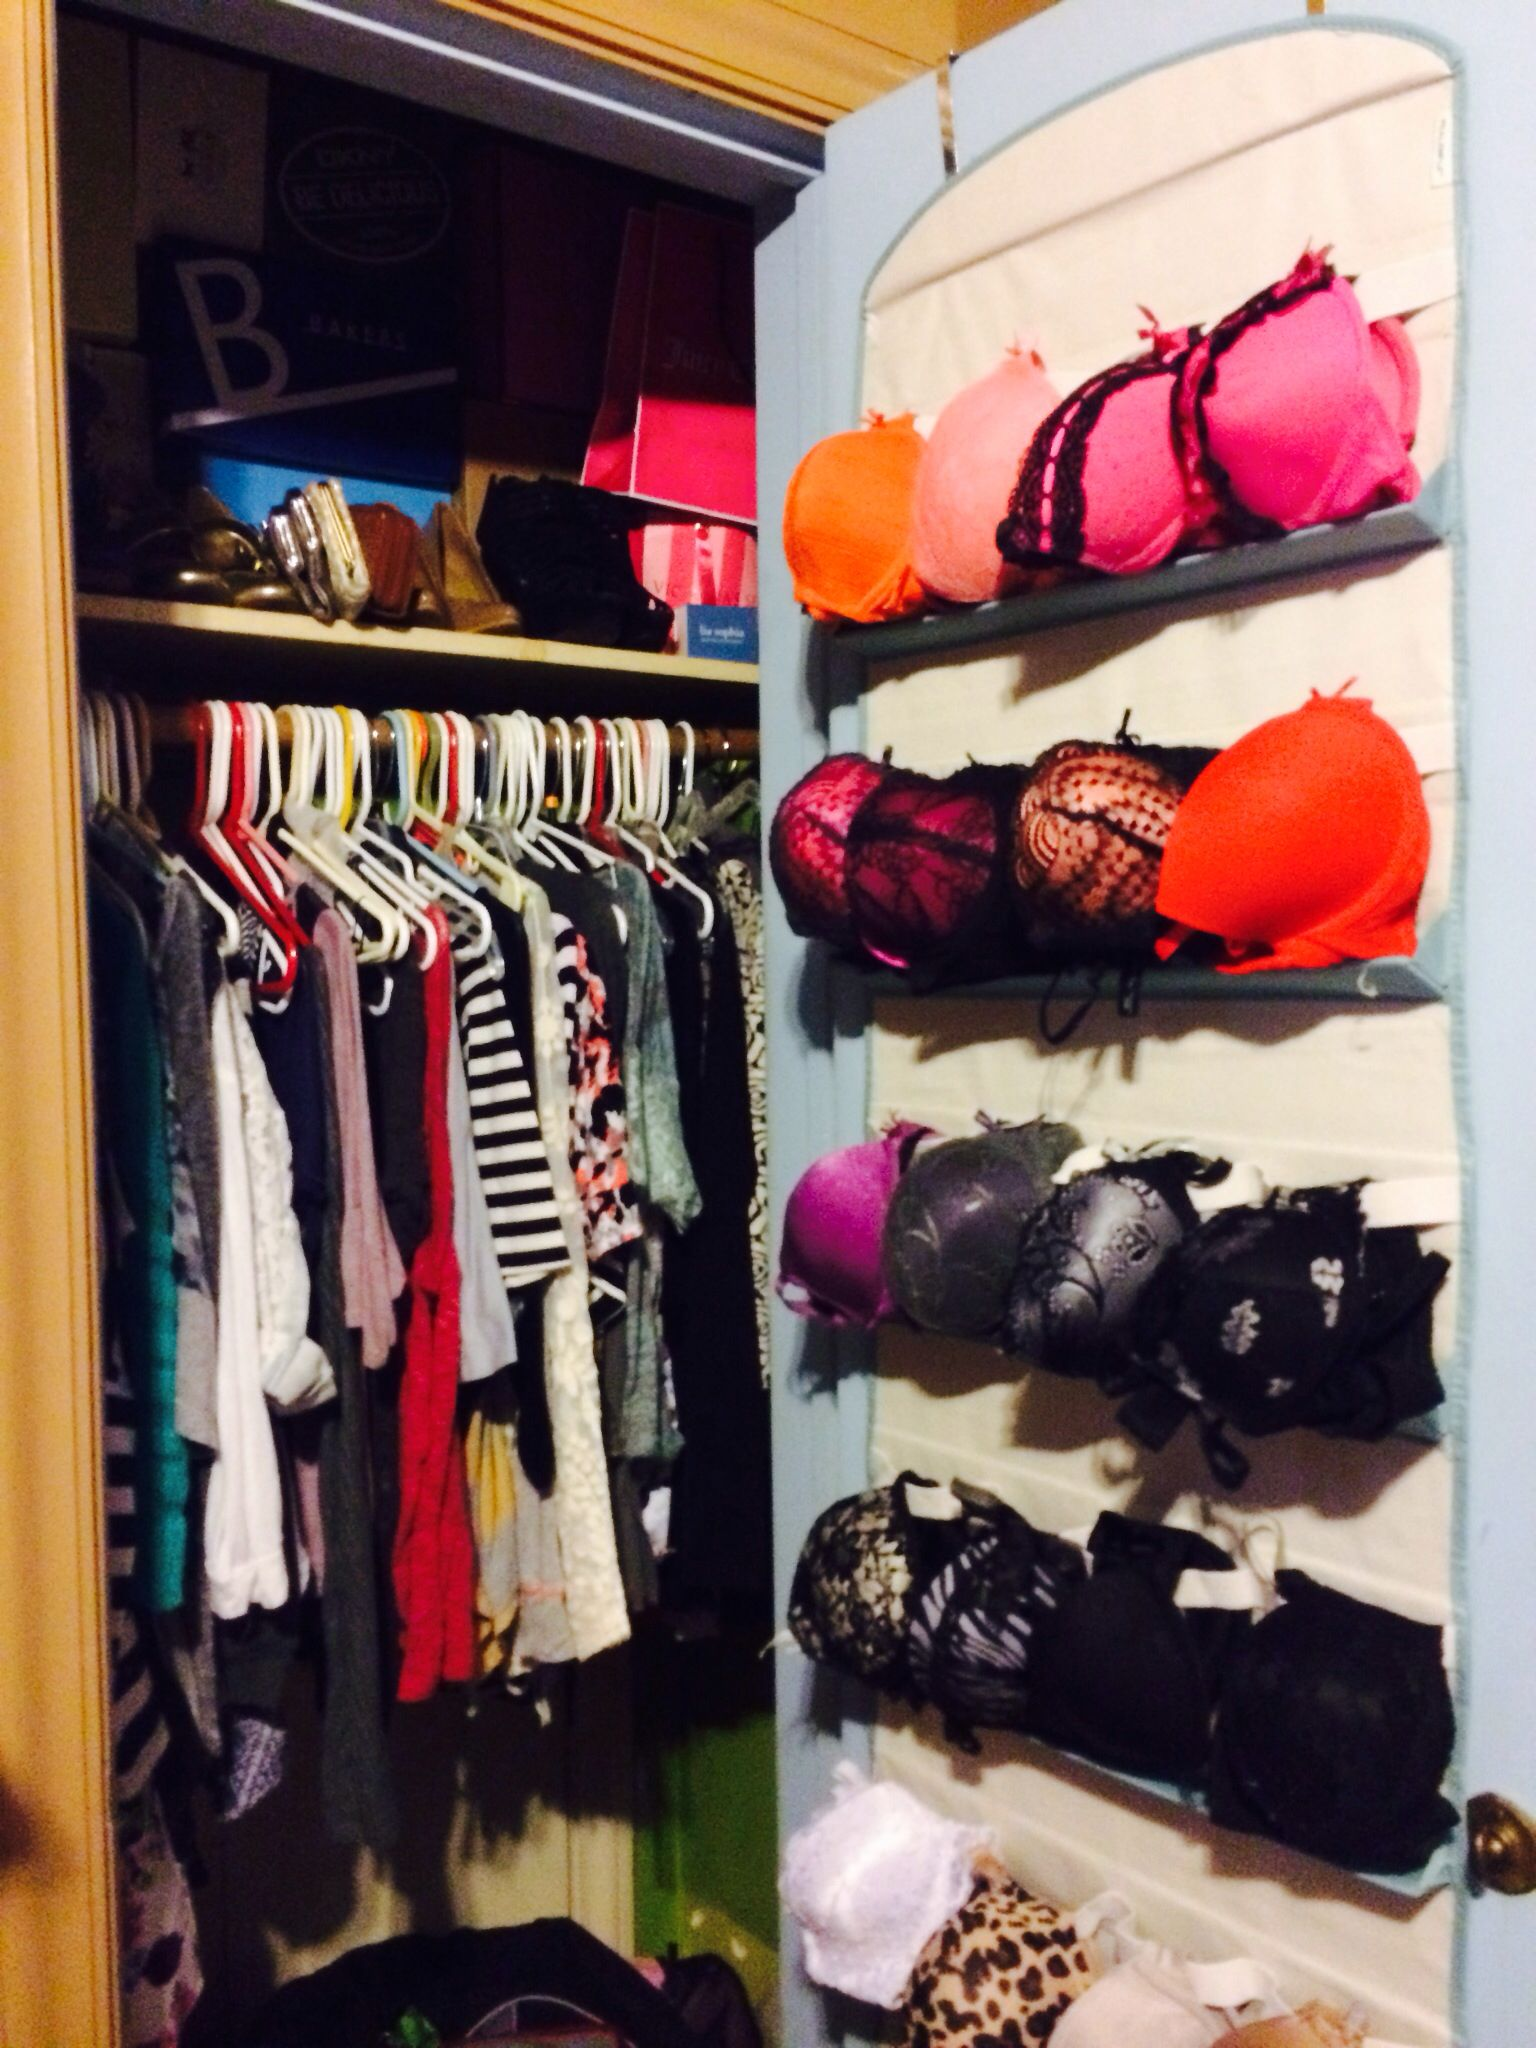 Diy Bra Organizer Organization Pinterest Diy Bra Organizers And Diy And Crafts